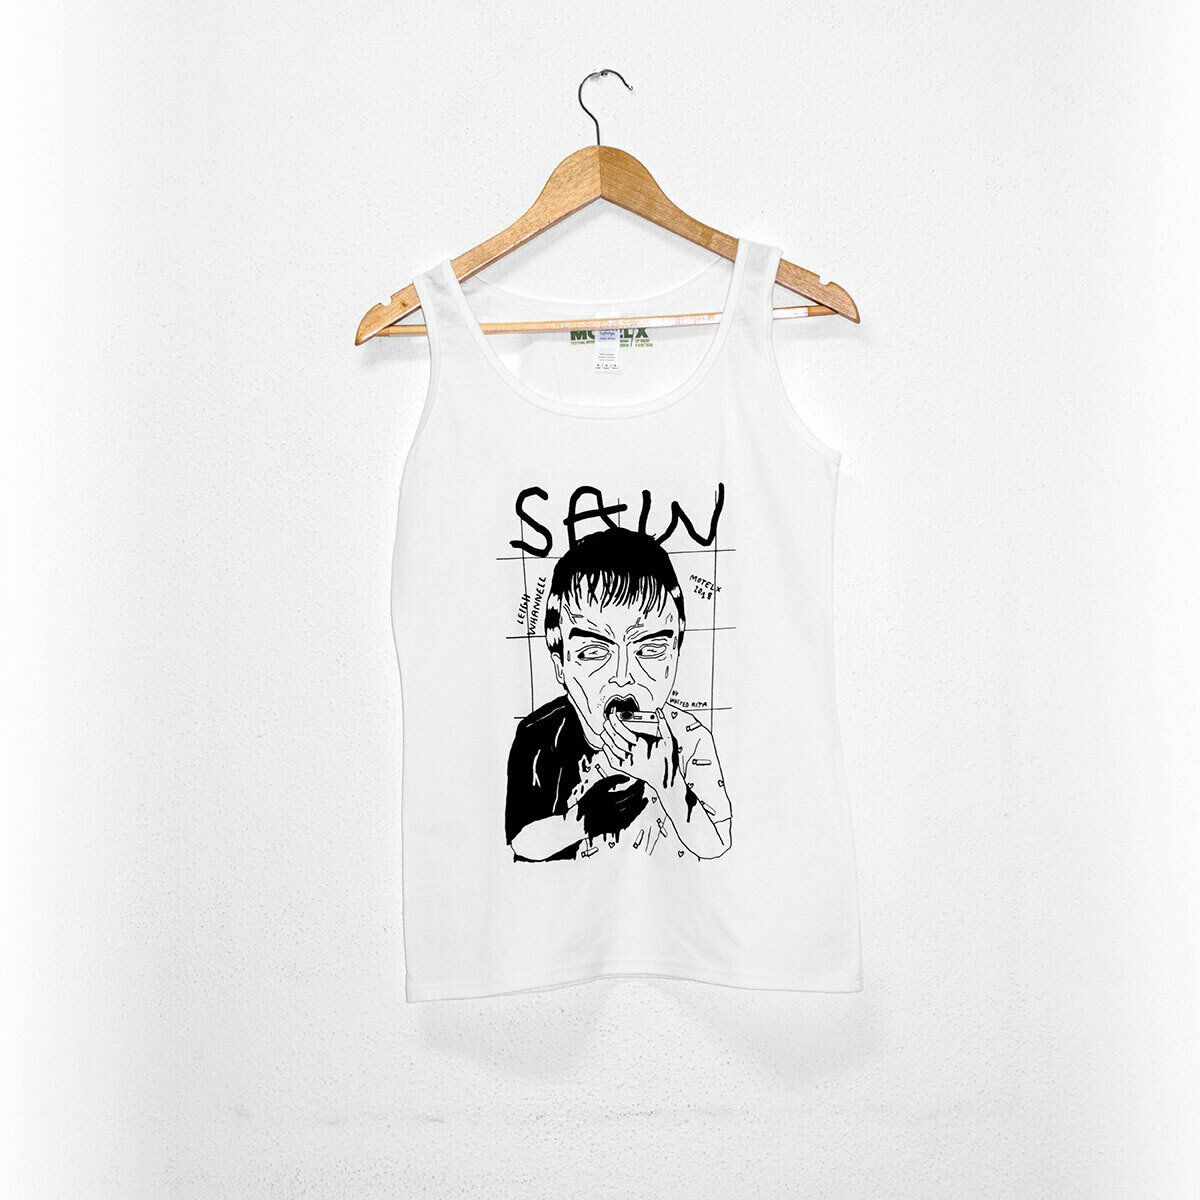 MOTELX 2018 Special Edition Tank Top Ladies / Saw by Wasted Rita